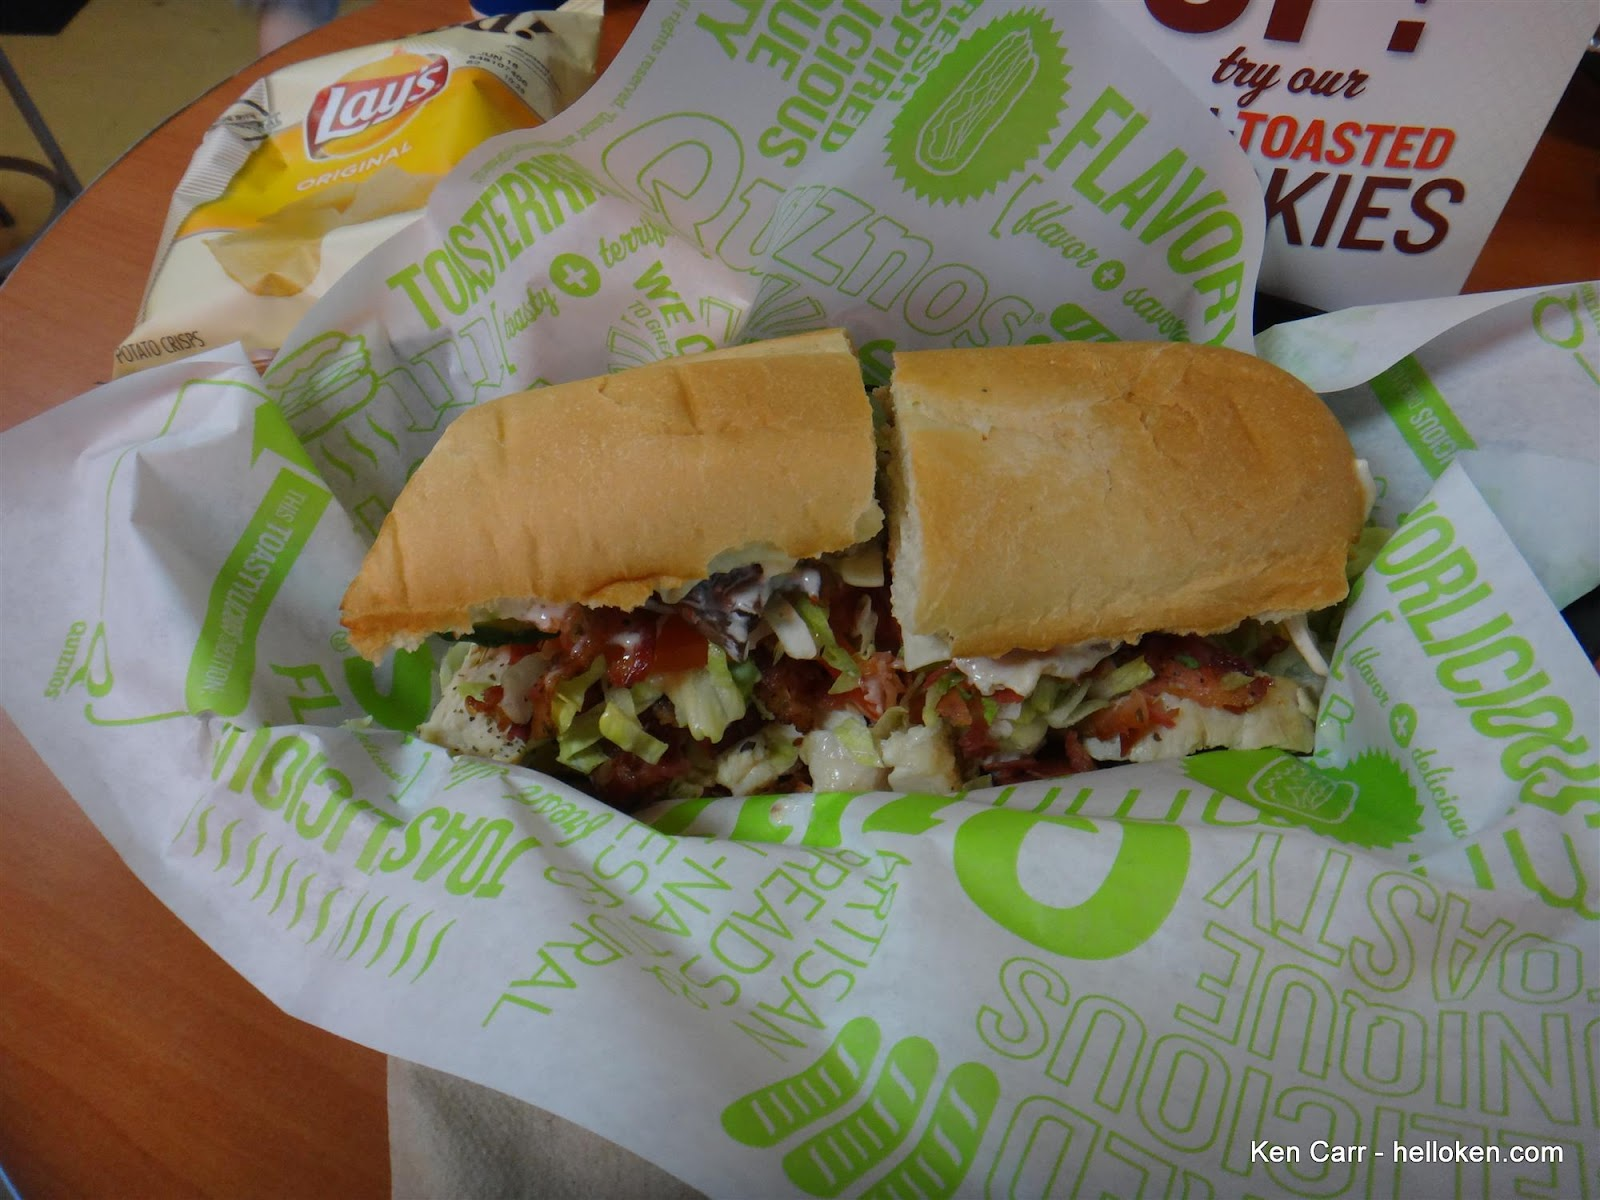 the ken carr blog quiznos and adult toys